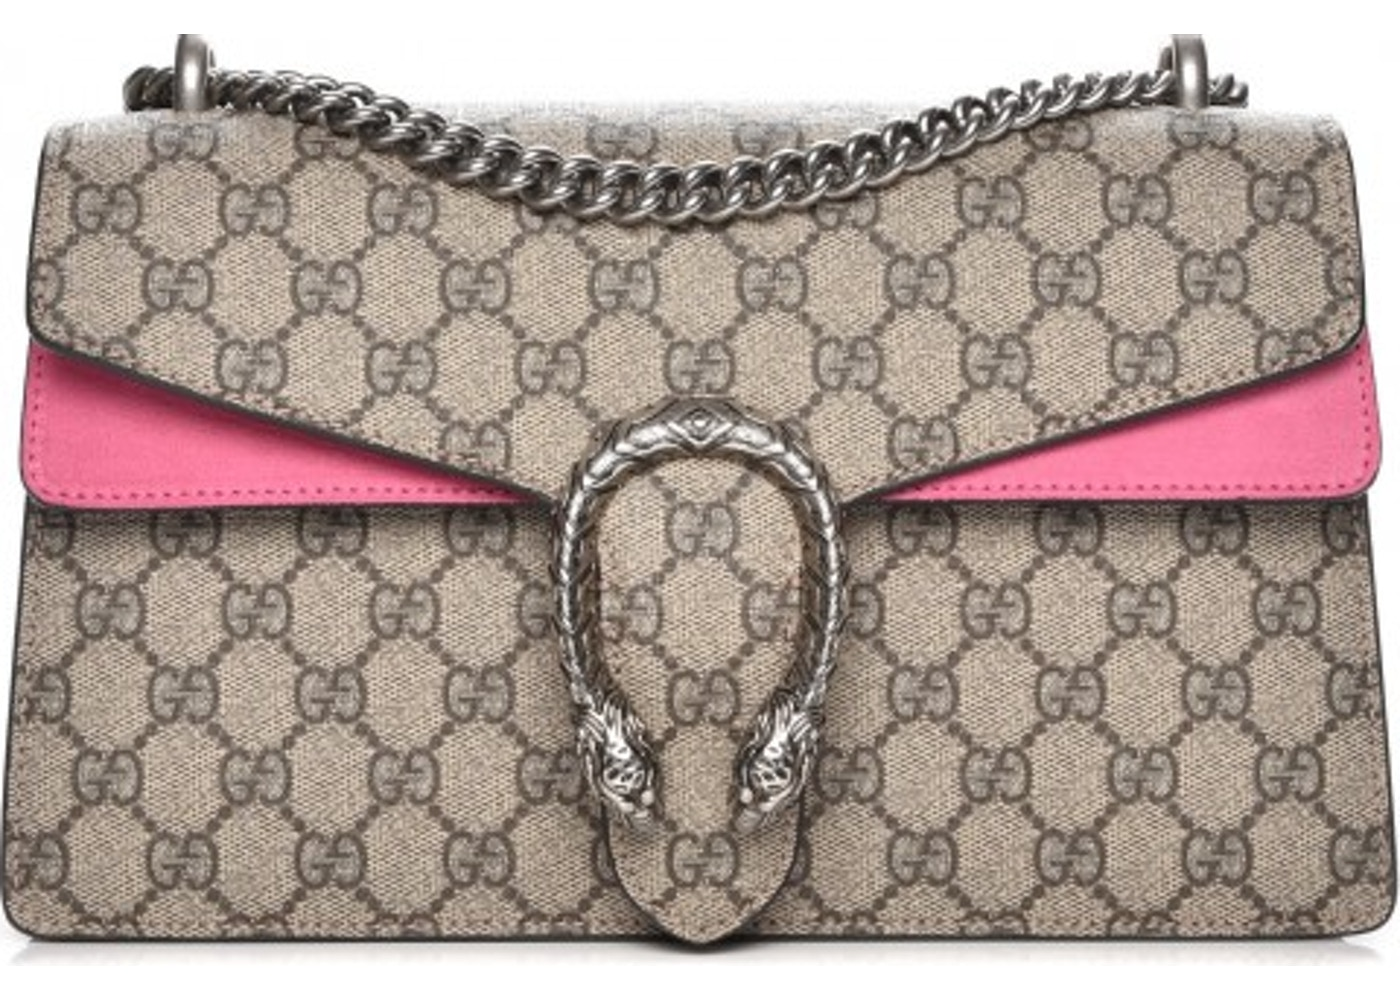 af91d284590a Gucci Dionysus Shoulder Bag Monogram GG Supreme Small Pink/Beige. Monogram  GG Supreme Small Pink/Beige